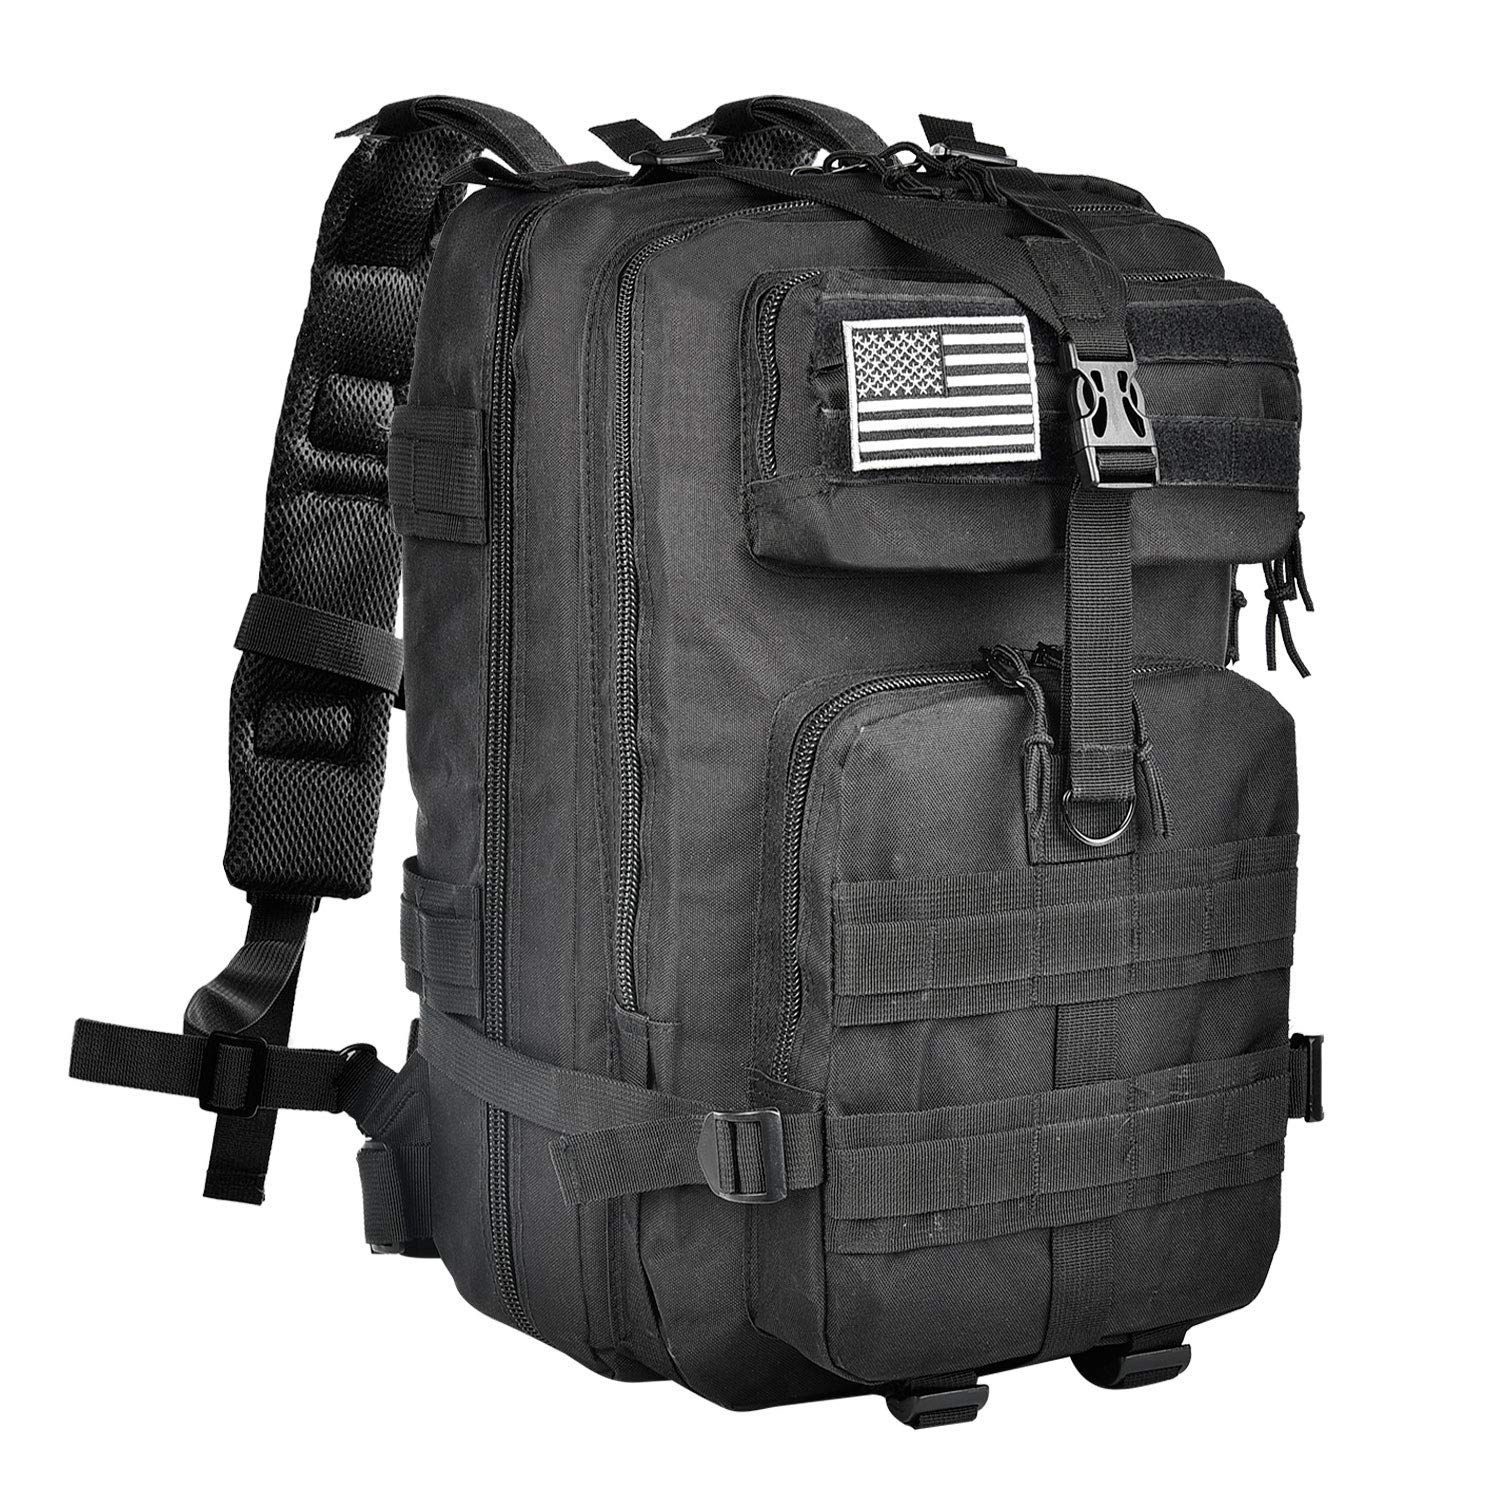 NOOLA Military Tactical Backpack 40L 3 Day Pack Molle Bag Army Rucksack Black by NOOLA